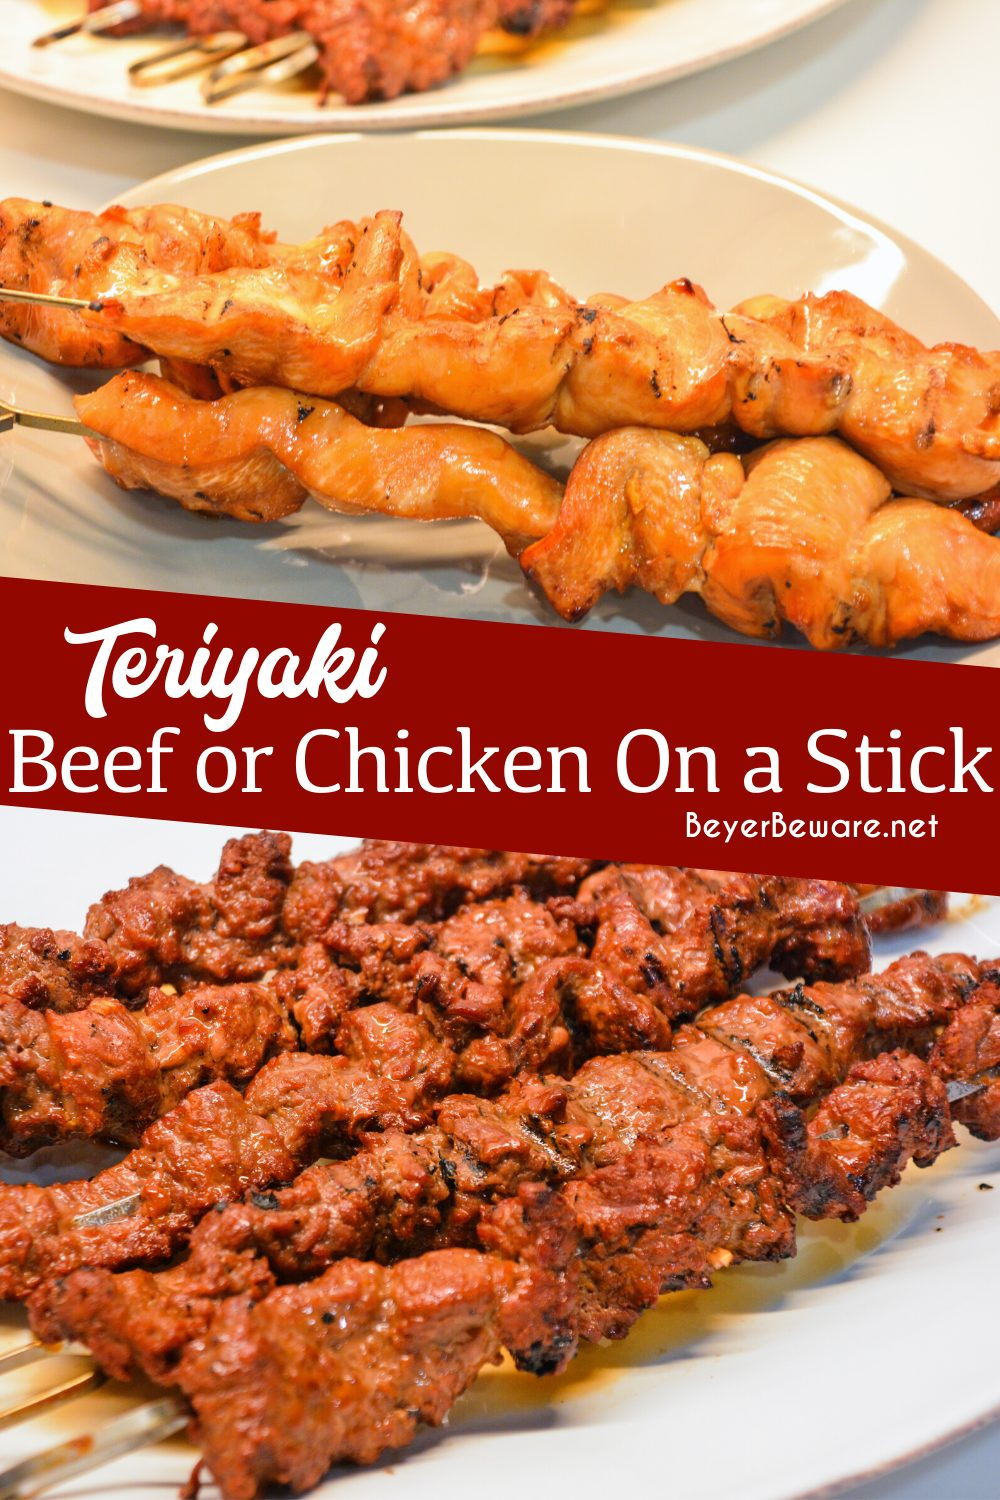 Teriyaki Beef Skewers recipe is a simple to make teriyaki marinade and can use any cut of steak including cube steak or for chicken on a stick.